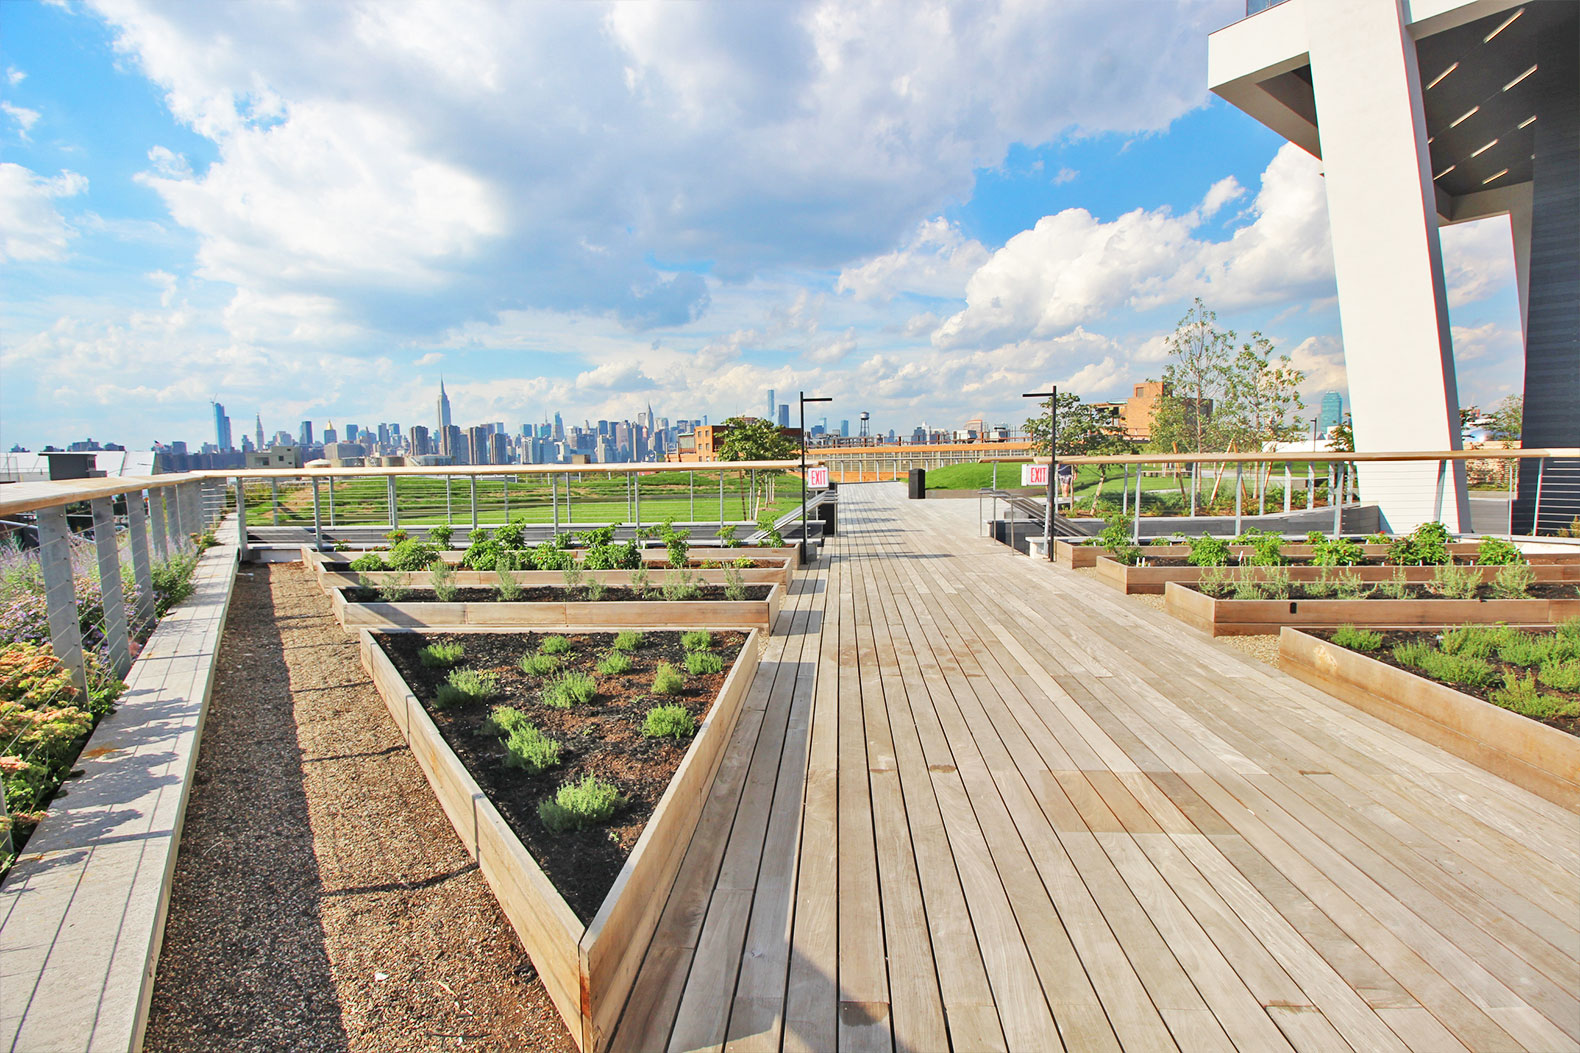 15000 Sq Ft Rooftop Park Boasts Sweeping City Views And Ice Cream Served Out Of A 1974 Airstream Trailer